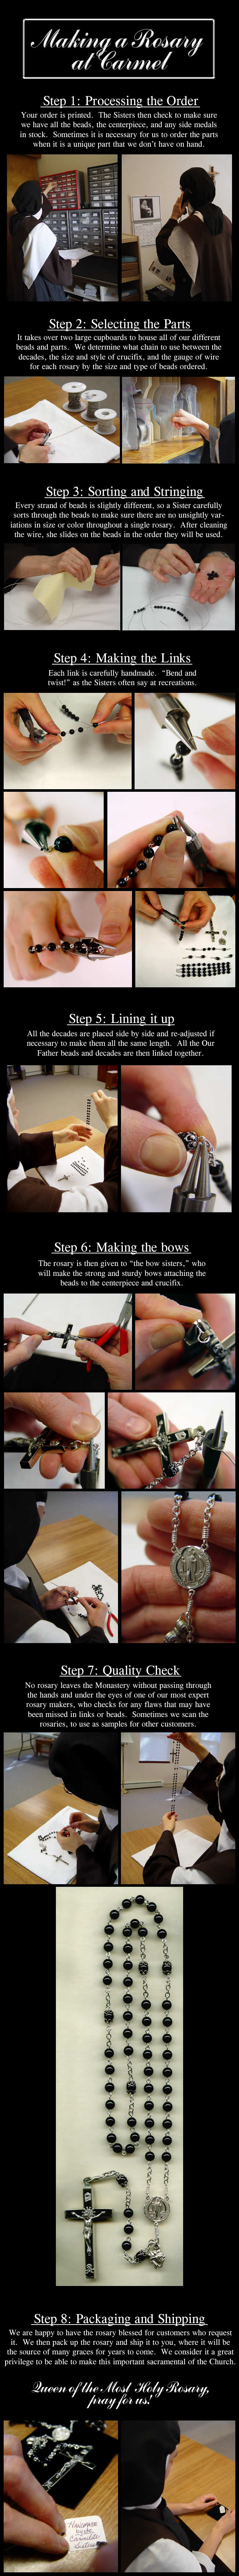 making a rosary, rosary made by sister, rosary making process, steps